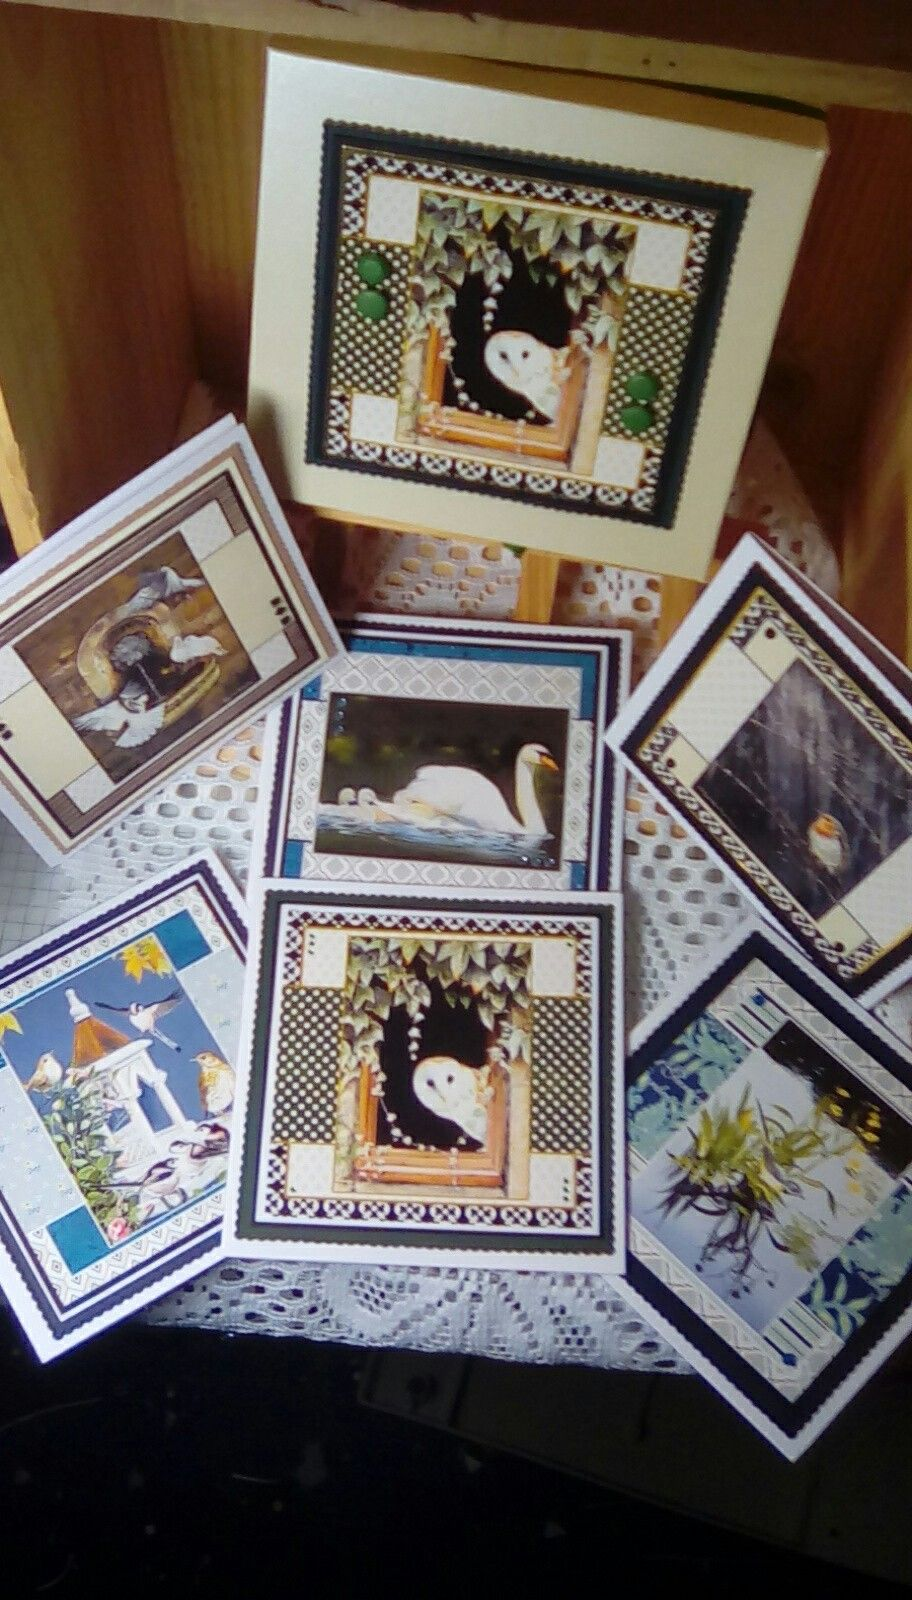 Pin By Julie Leighton On My Pollyanna Pickering Creative Crafting